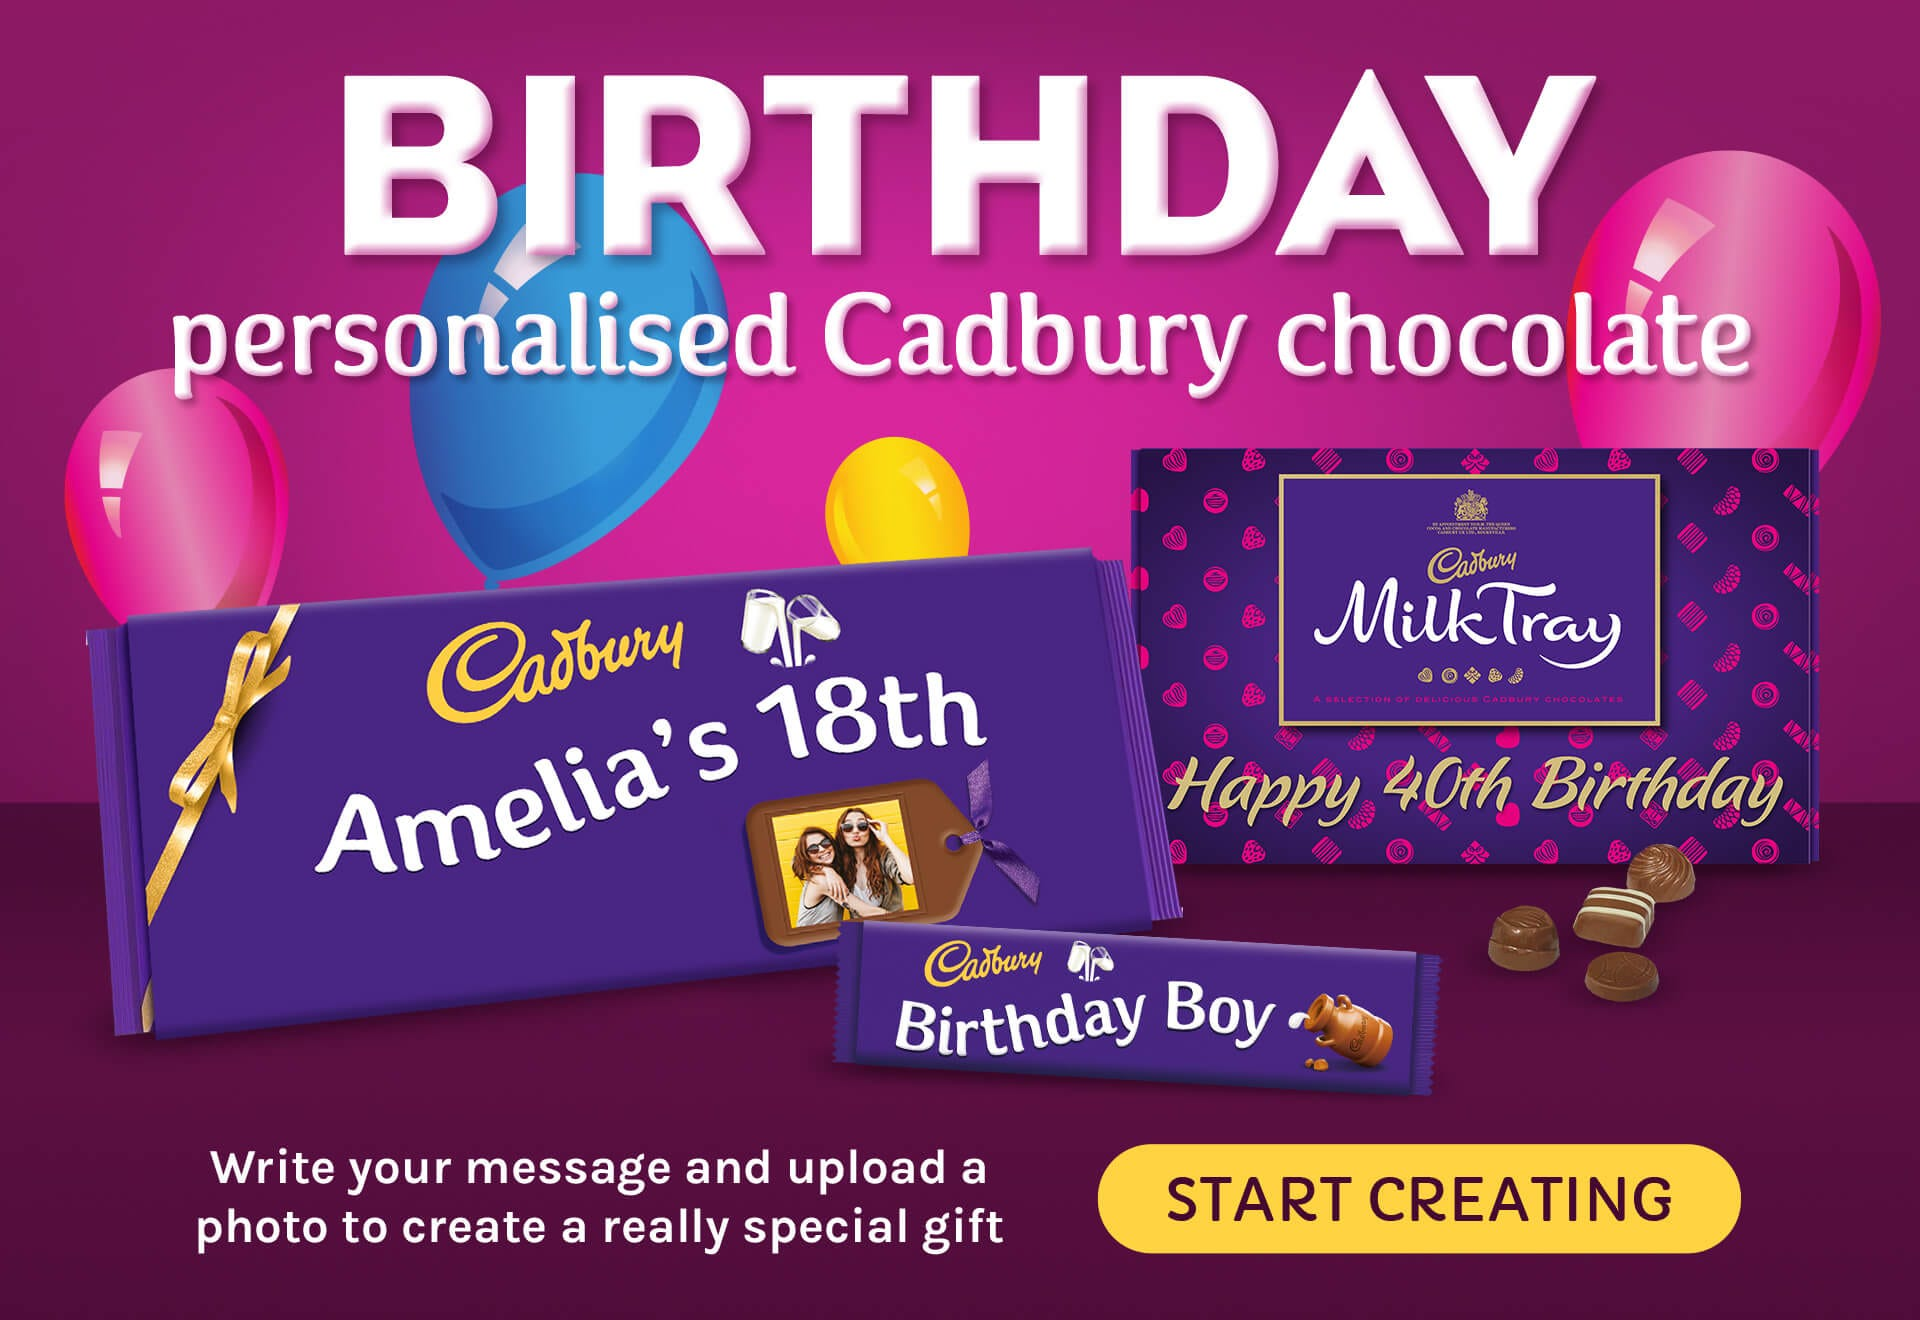 Say Happy Birthday with our fantastic range of personalised chocolate at Cadbury Gifts Direct